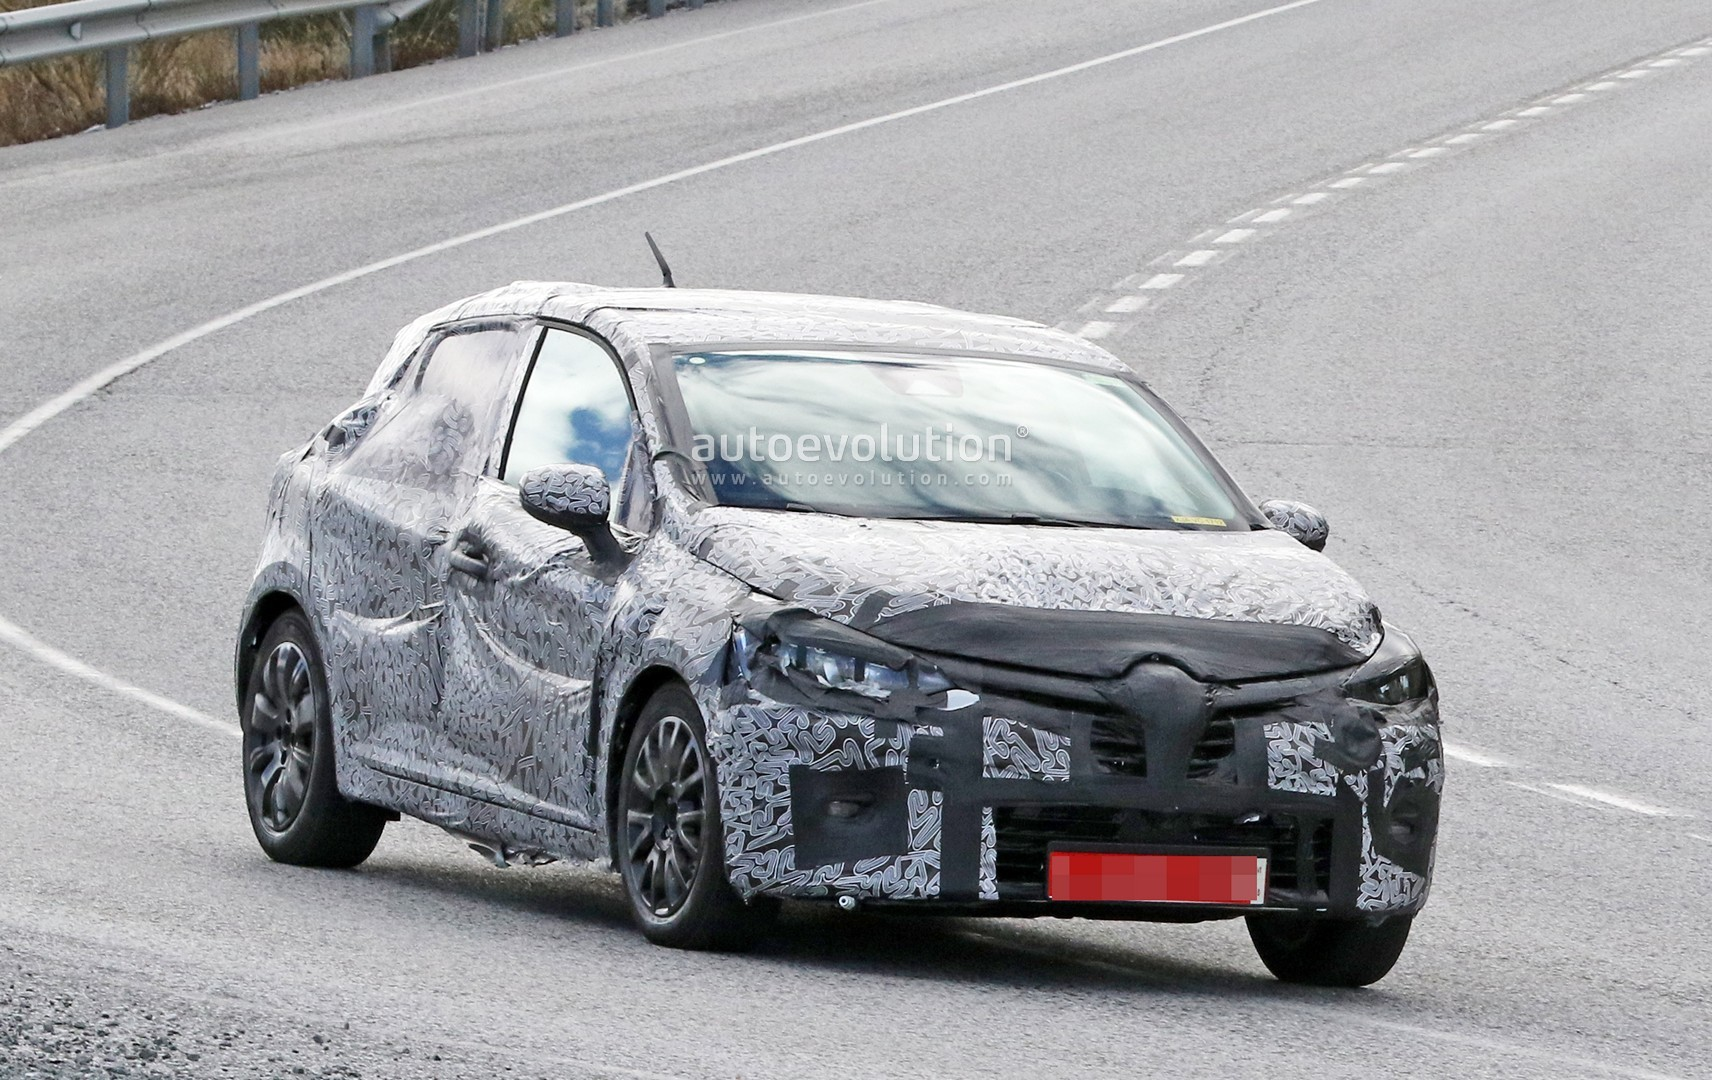 2019 renault clio spied for the first time looks like a mini megane autoevolution. Black Bedroom Furniture Sets. Home Design Ideas